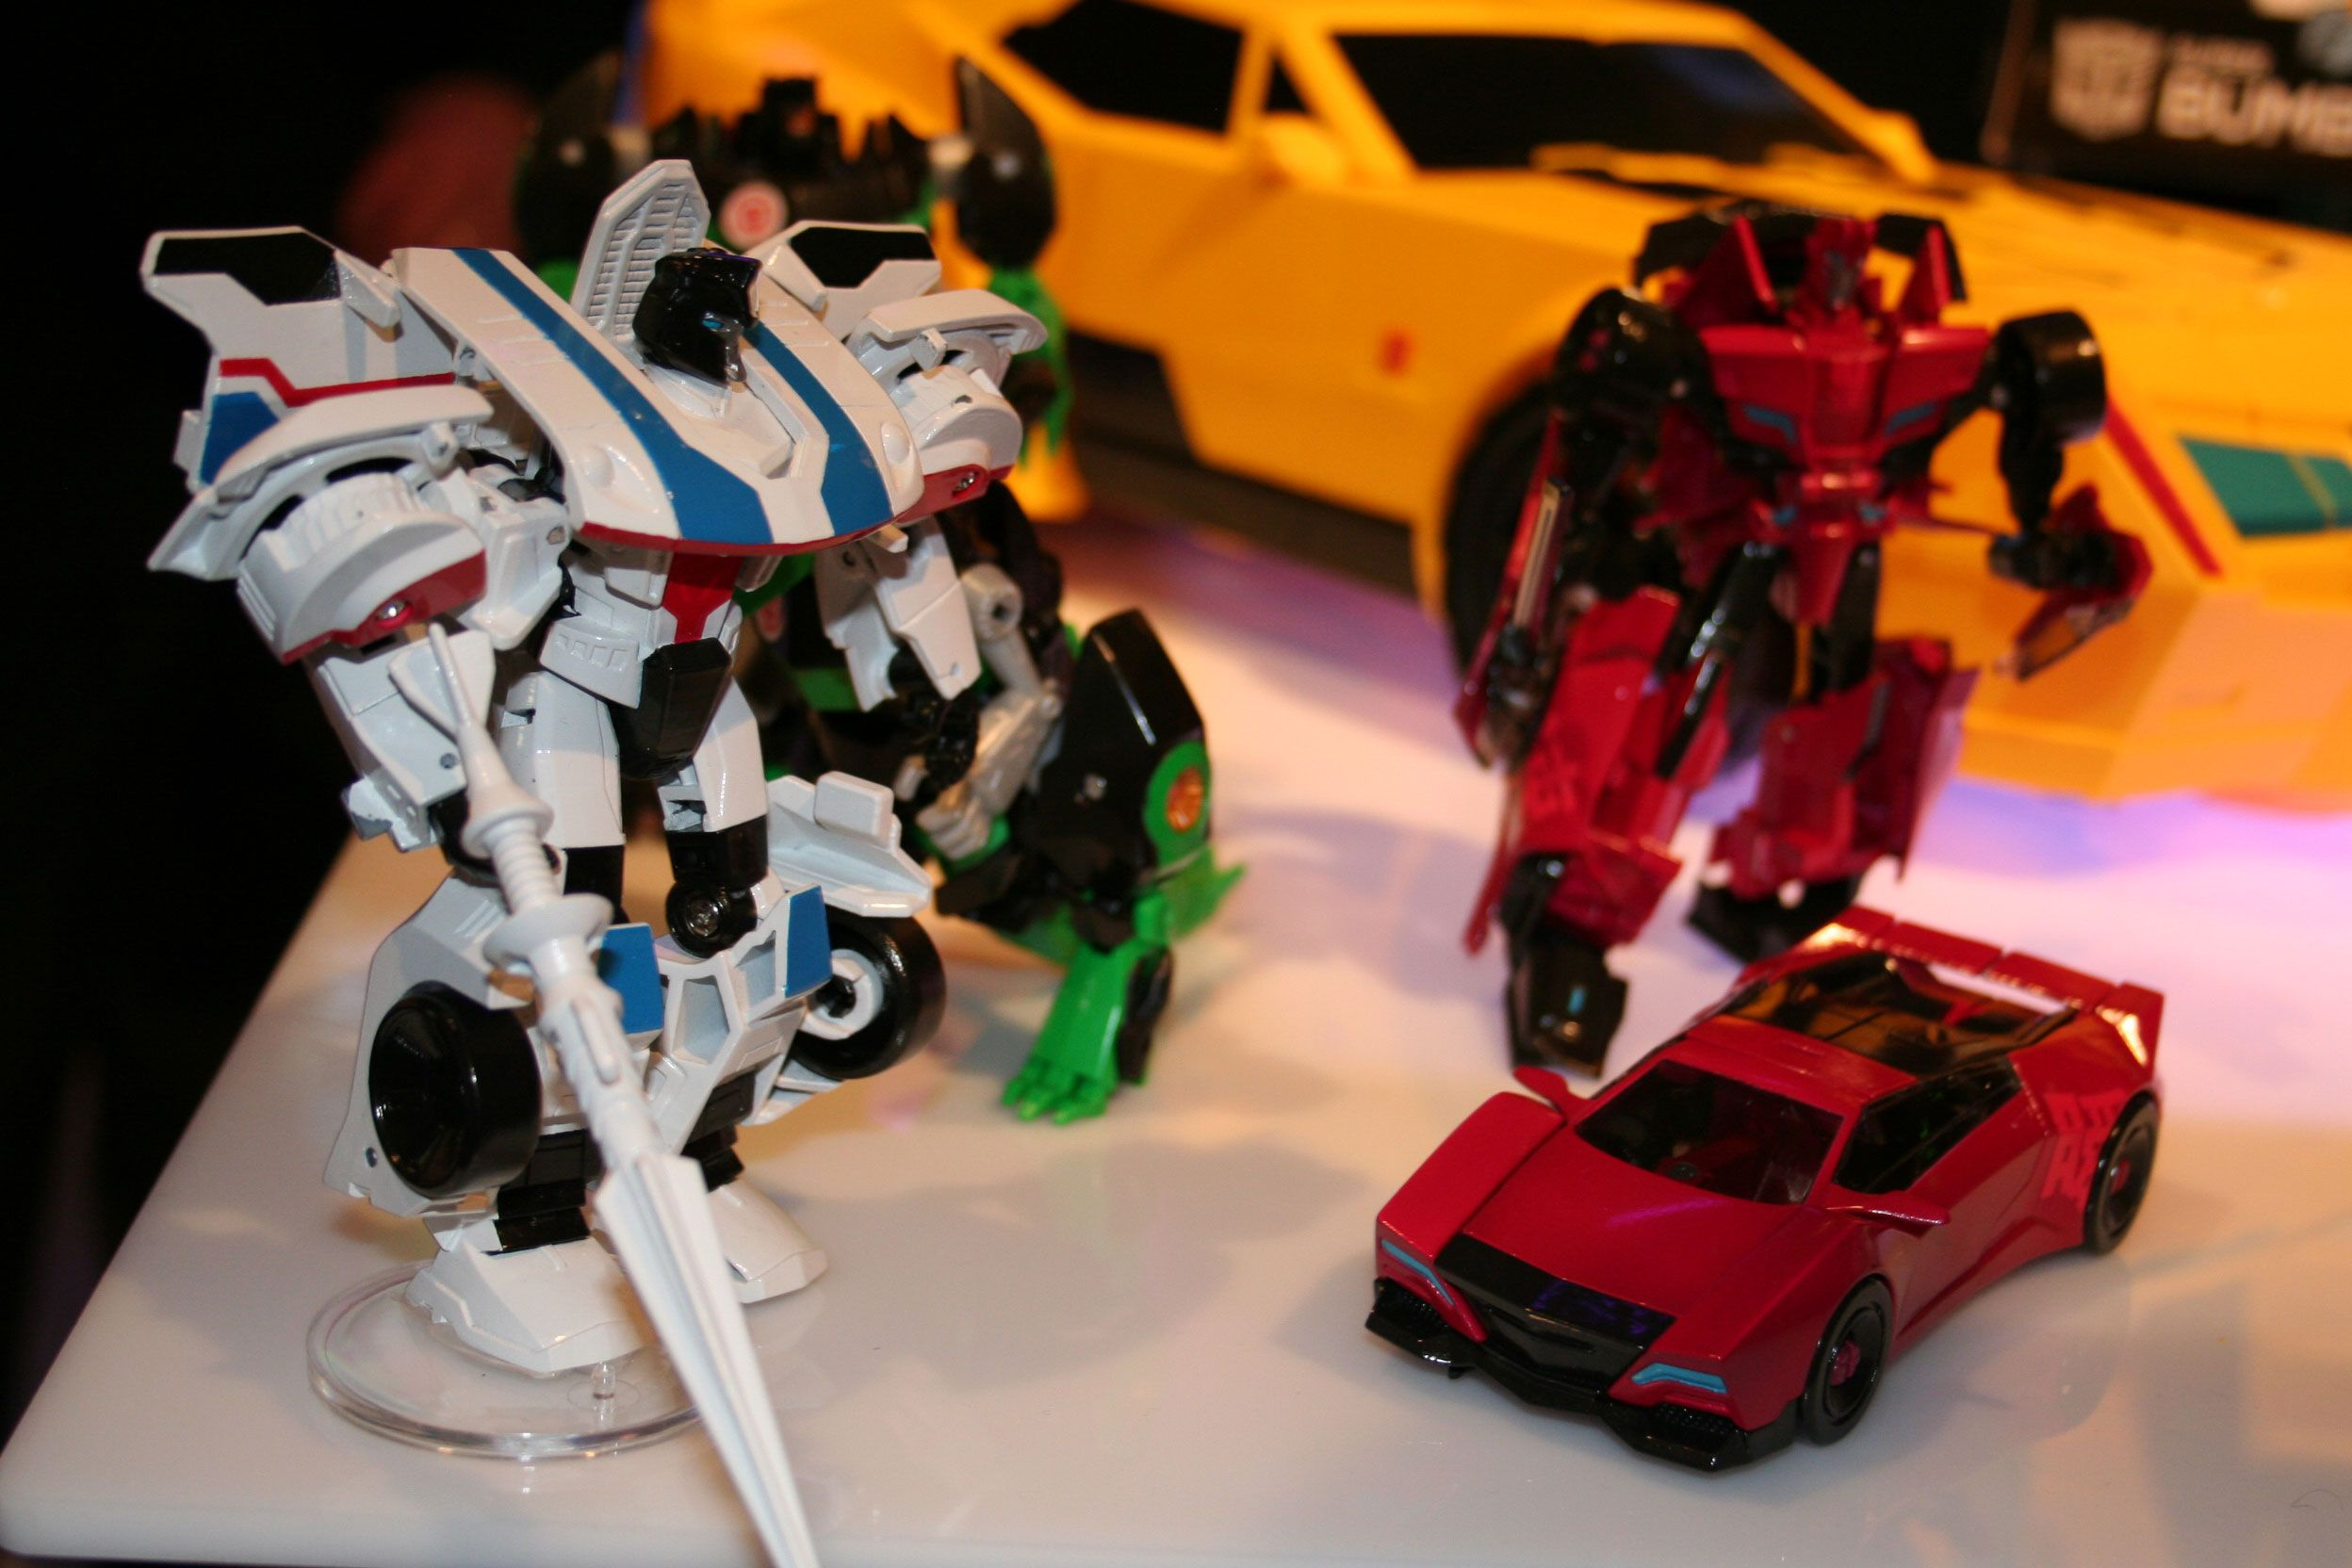 Transformers Toy from Hasbro at Toy Fair 2015